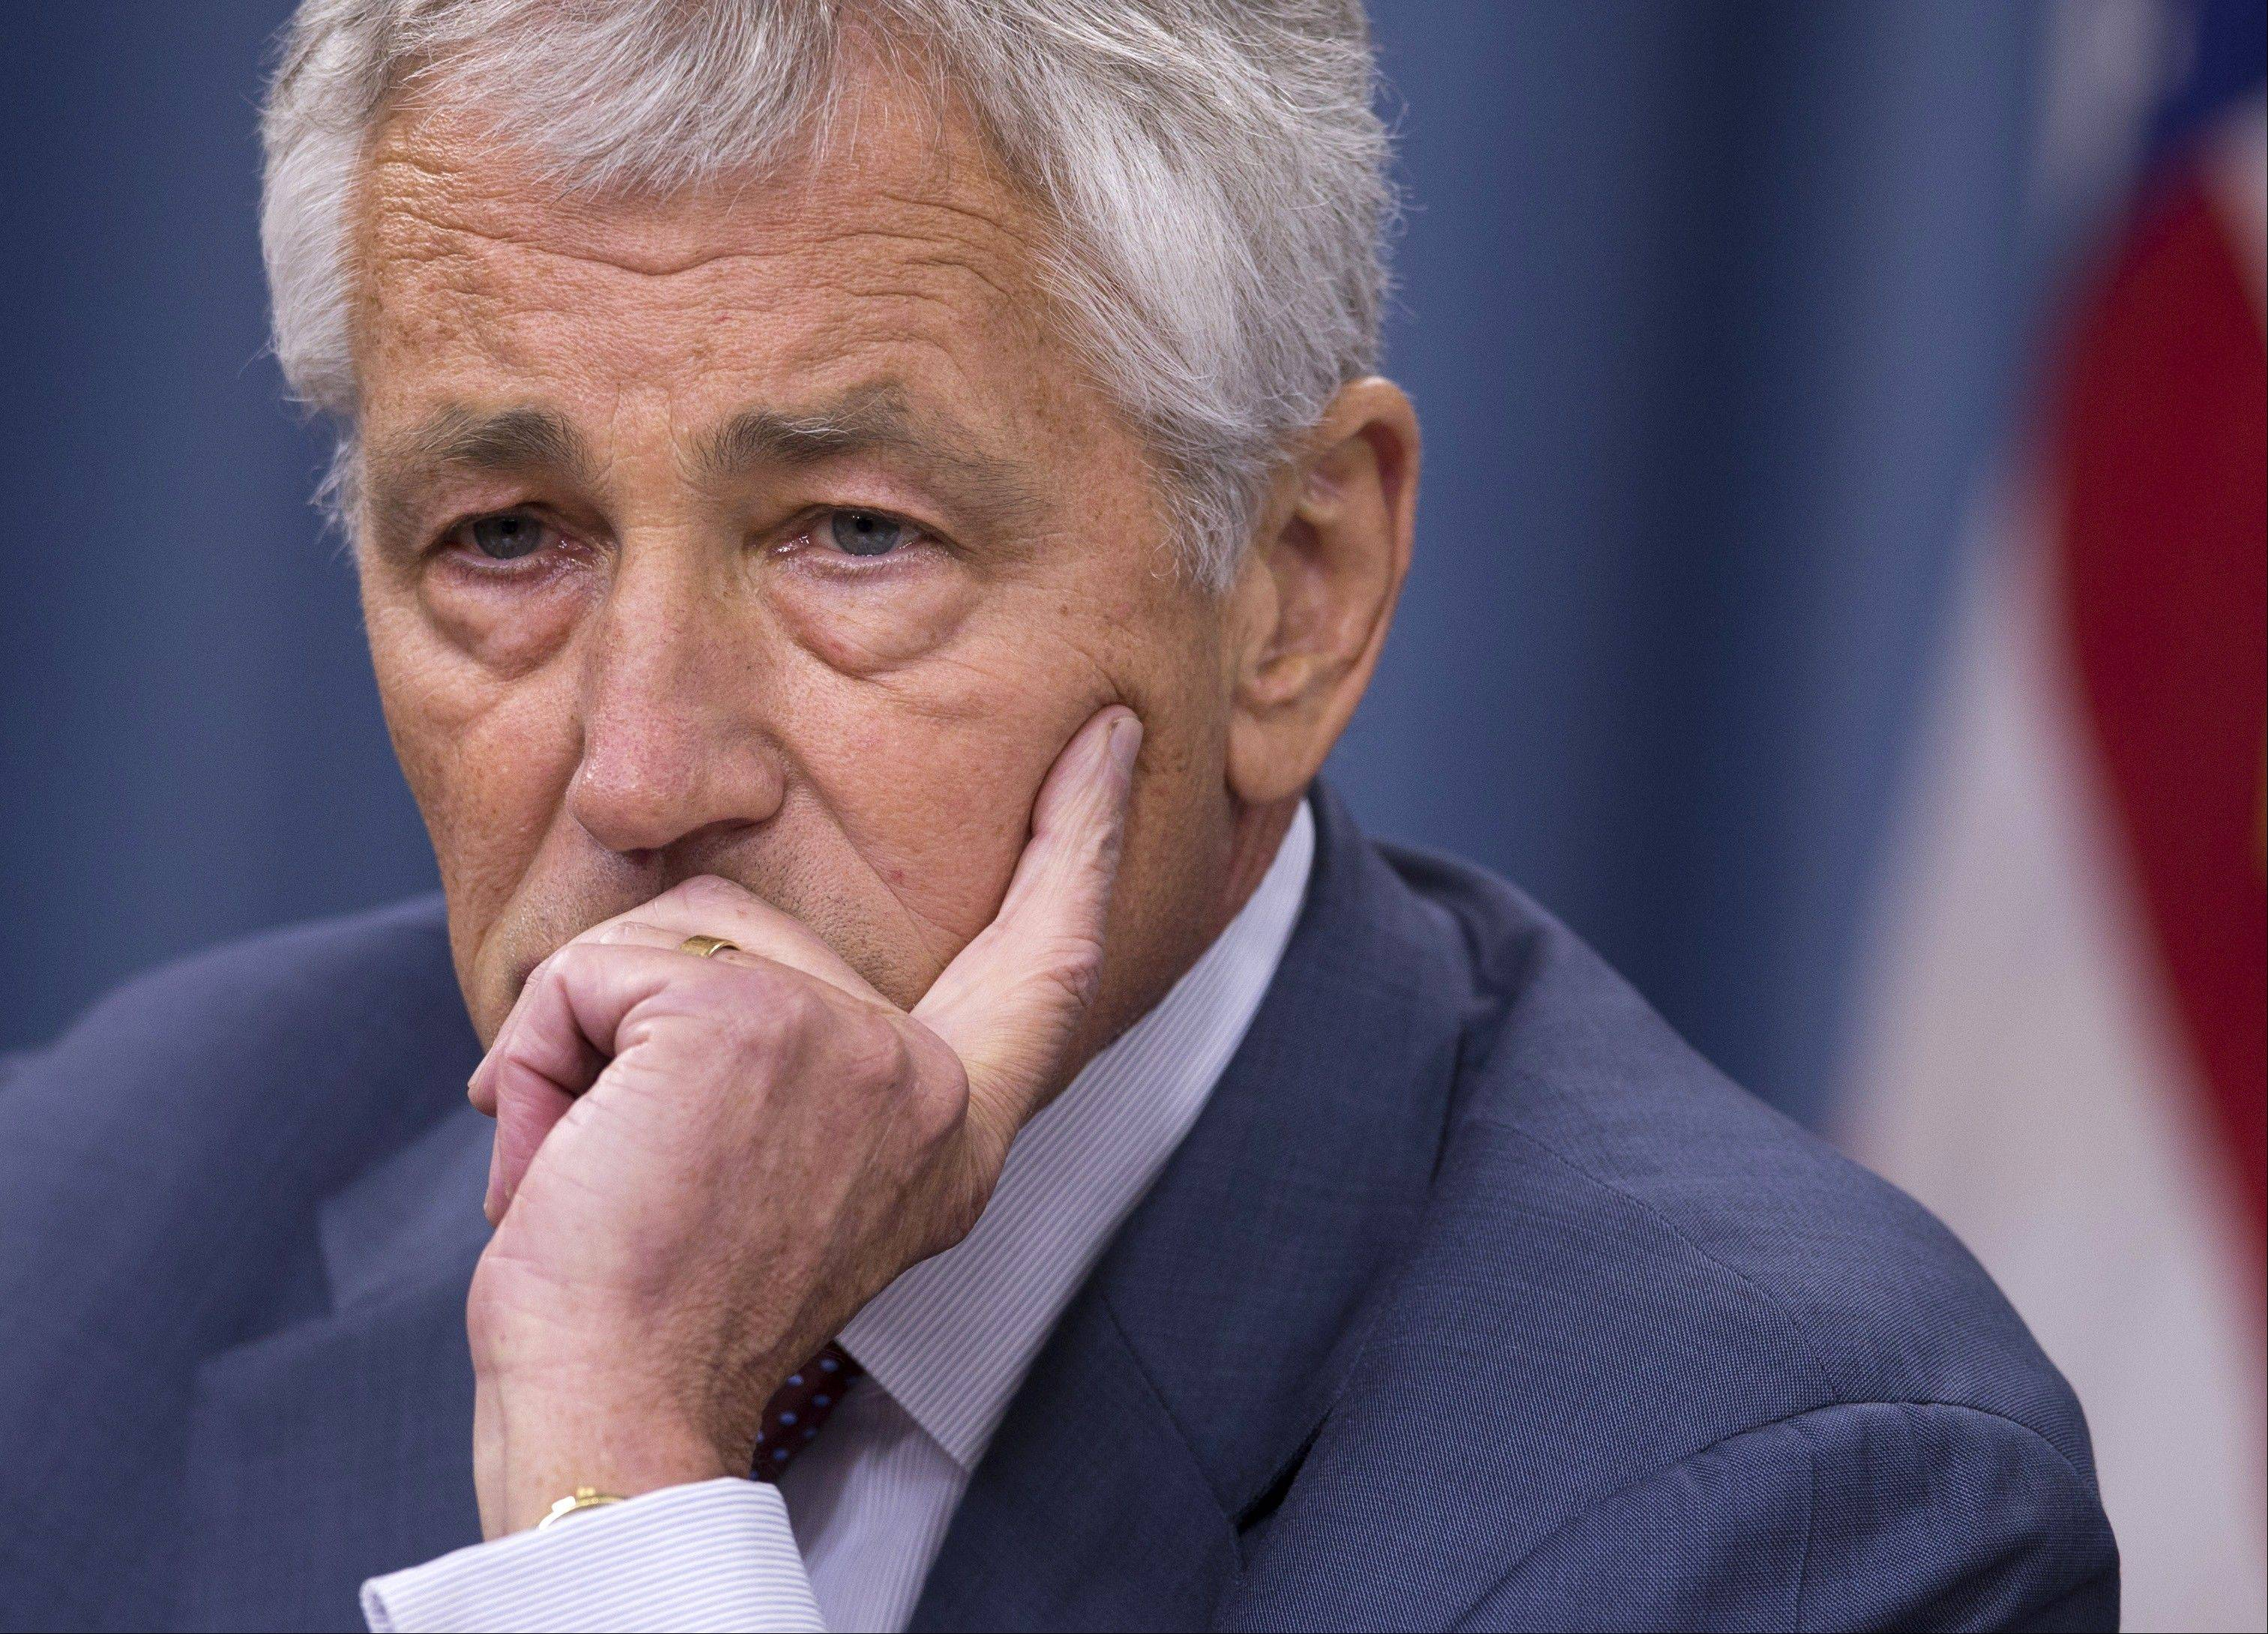 Defense Secretary Chuck Hagel pauses during a news conference at the Pentagon, Wednesday.